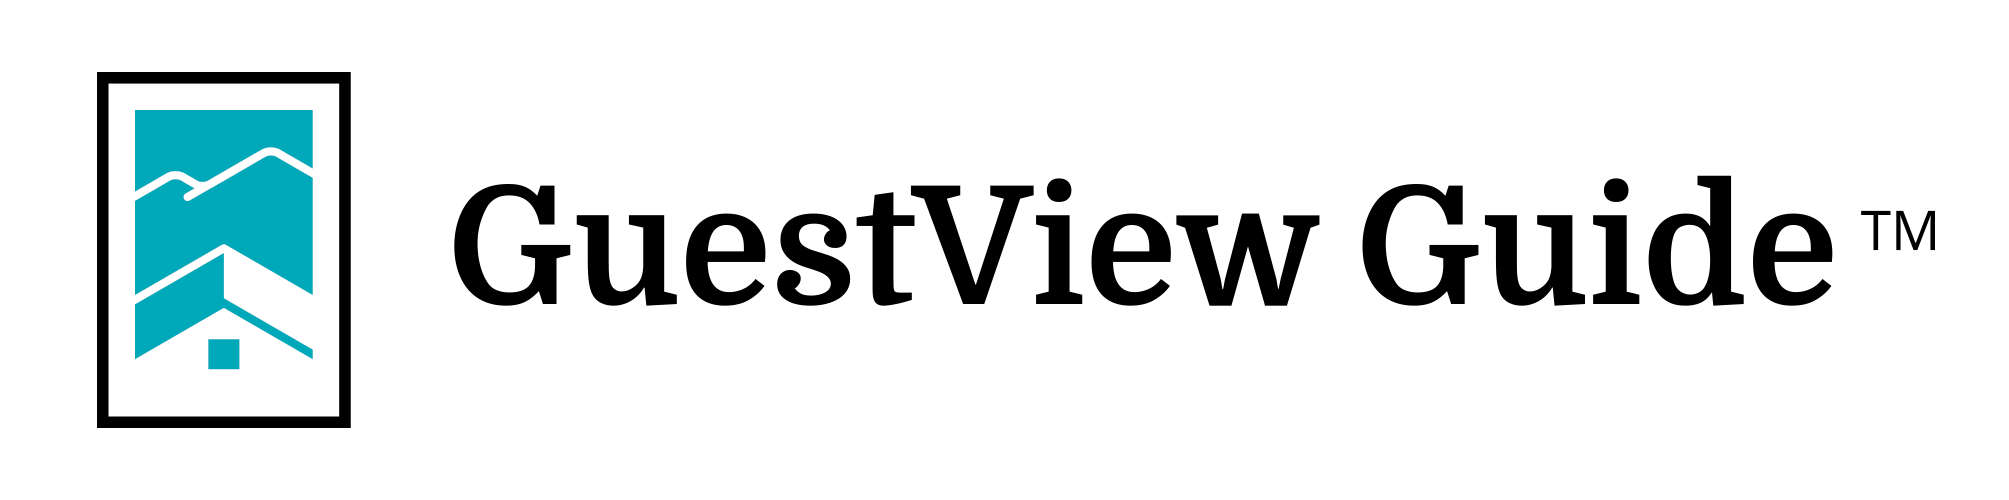 logo_gvg_horizontal_black_text.png